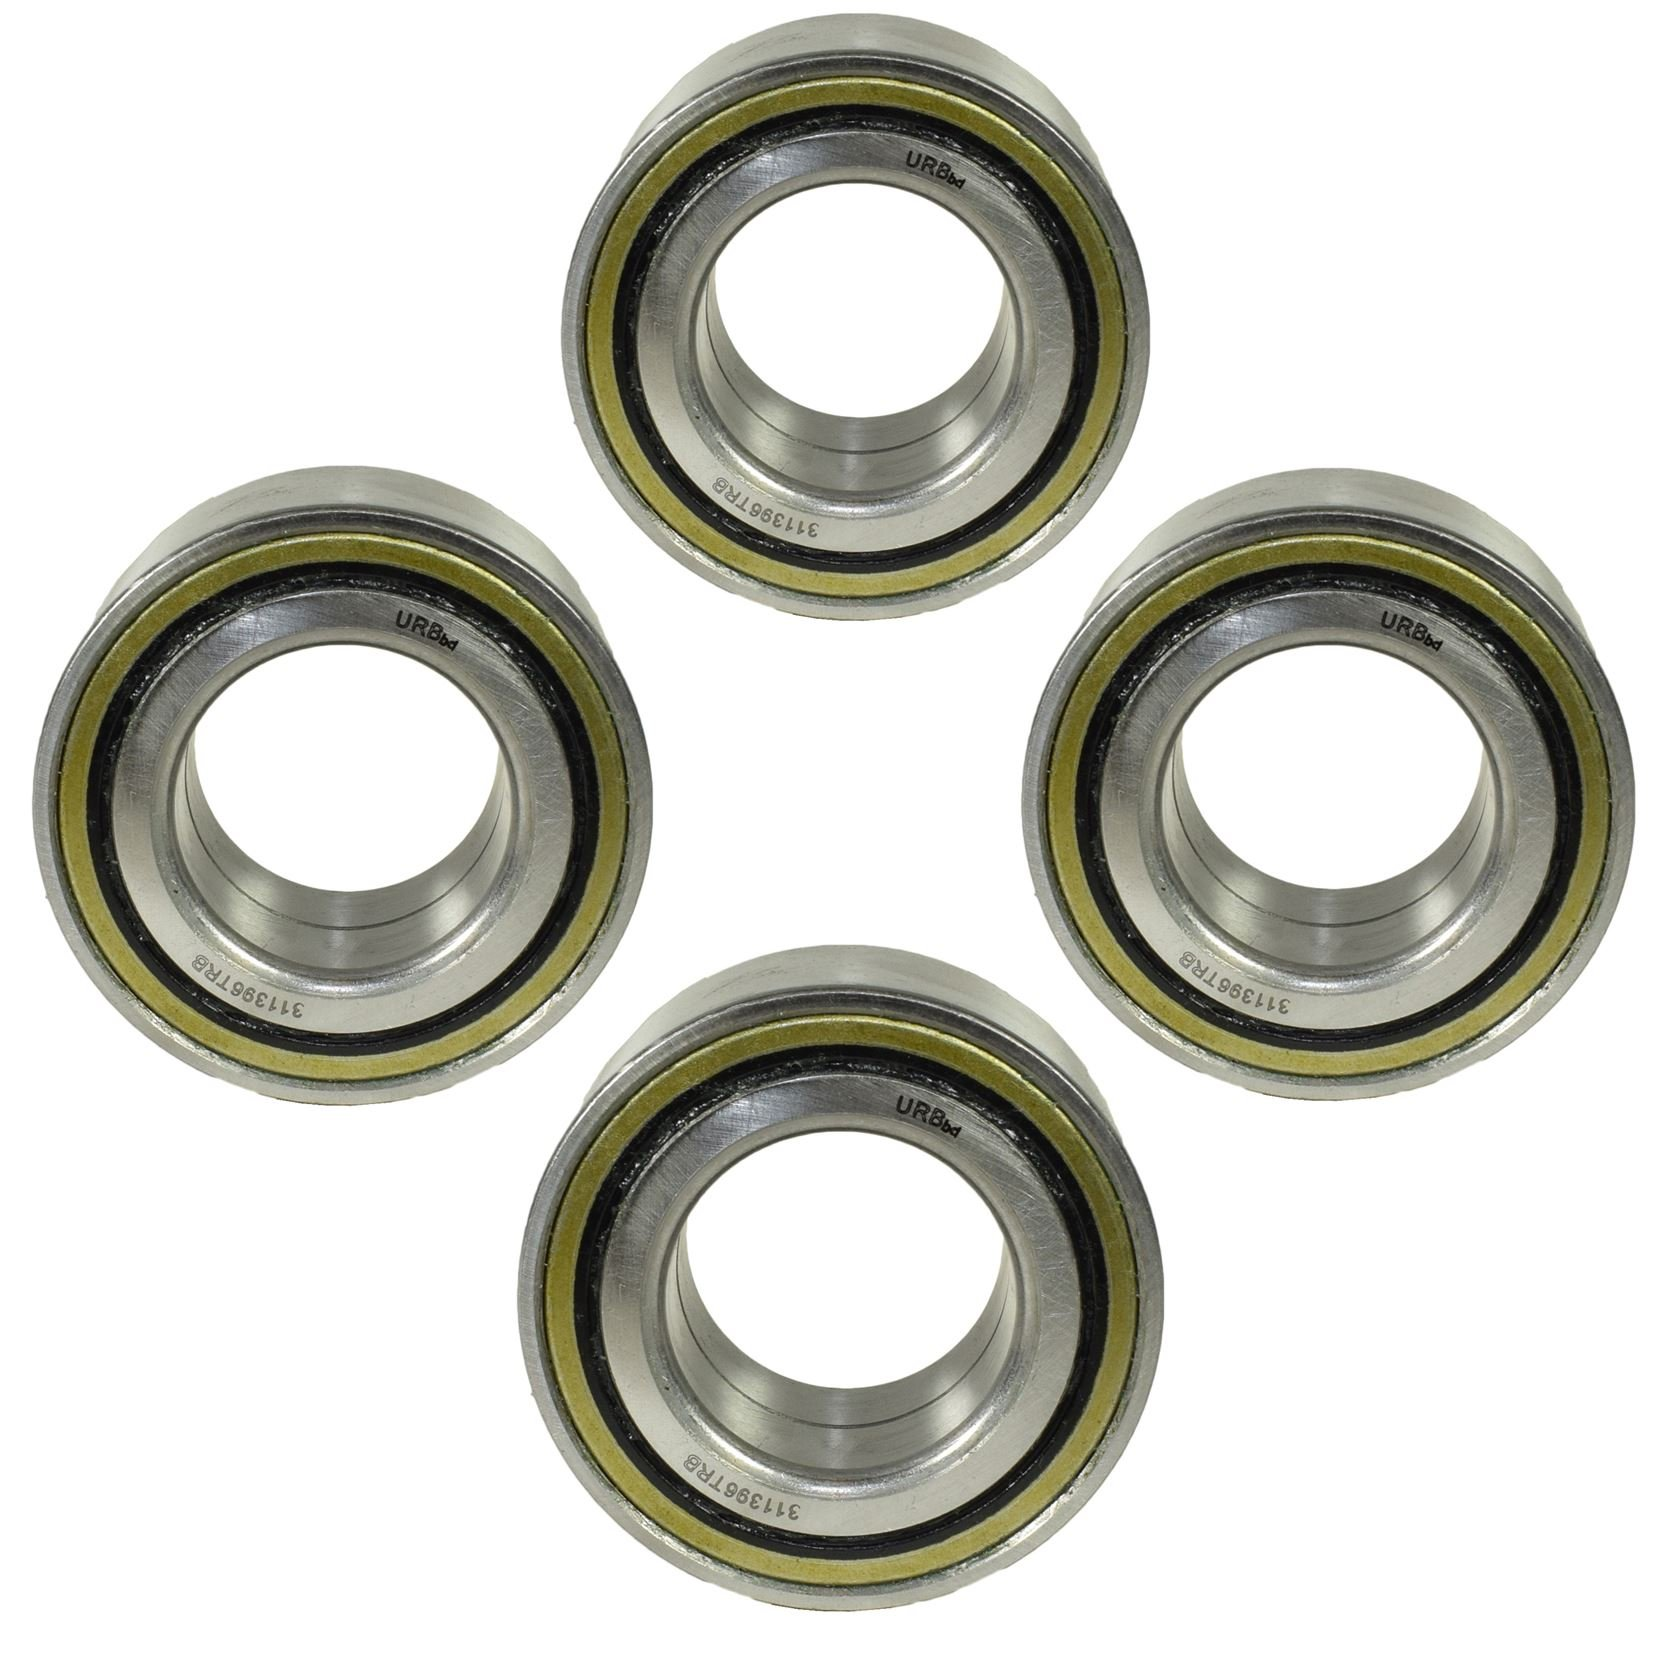 AB Tools 4 HD Trailer Sealed Bearing Hubs Alko 581169 Knott 45887.12 ID39 OD72 W37mm by AB Tools